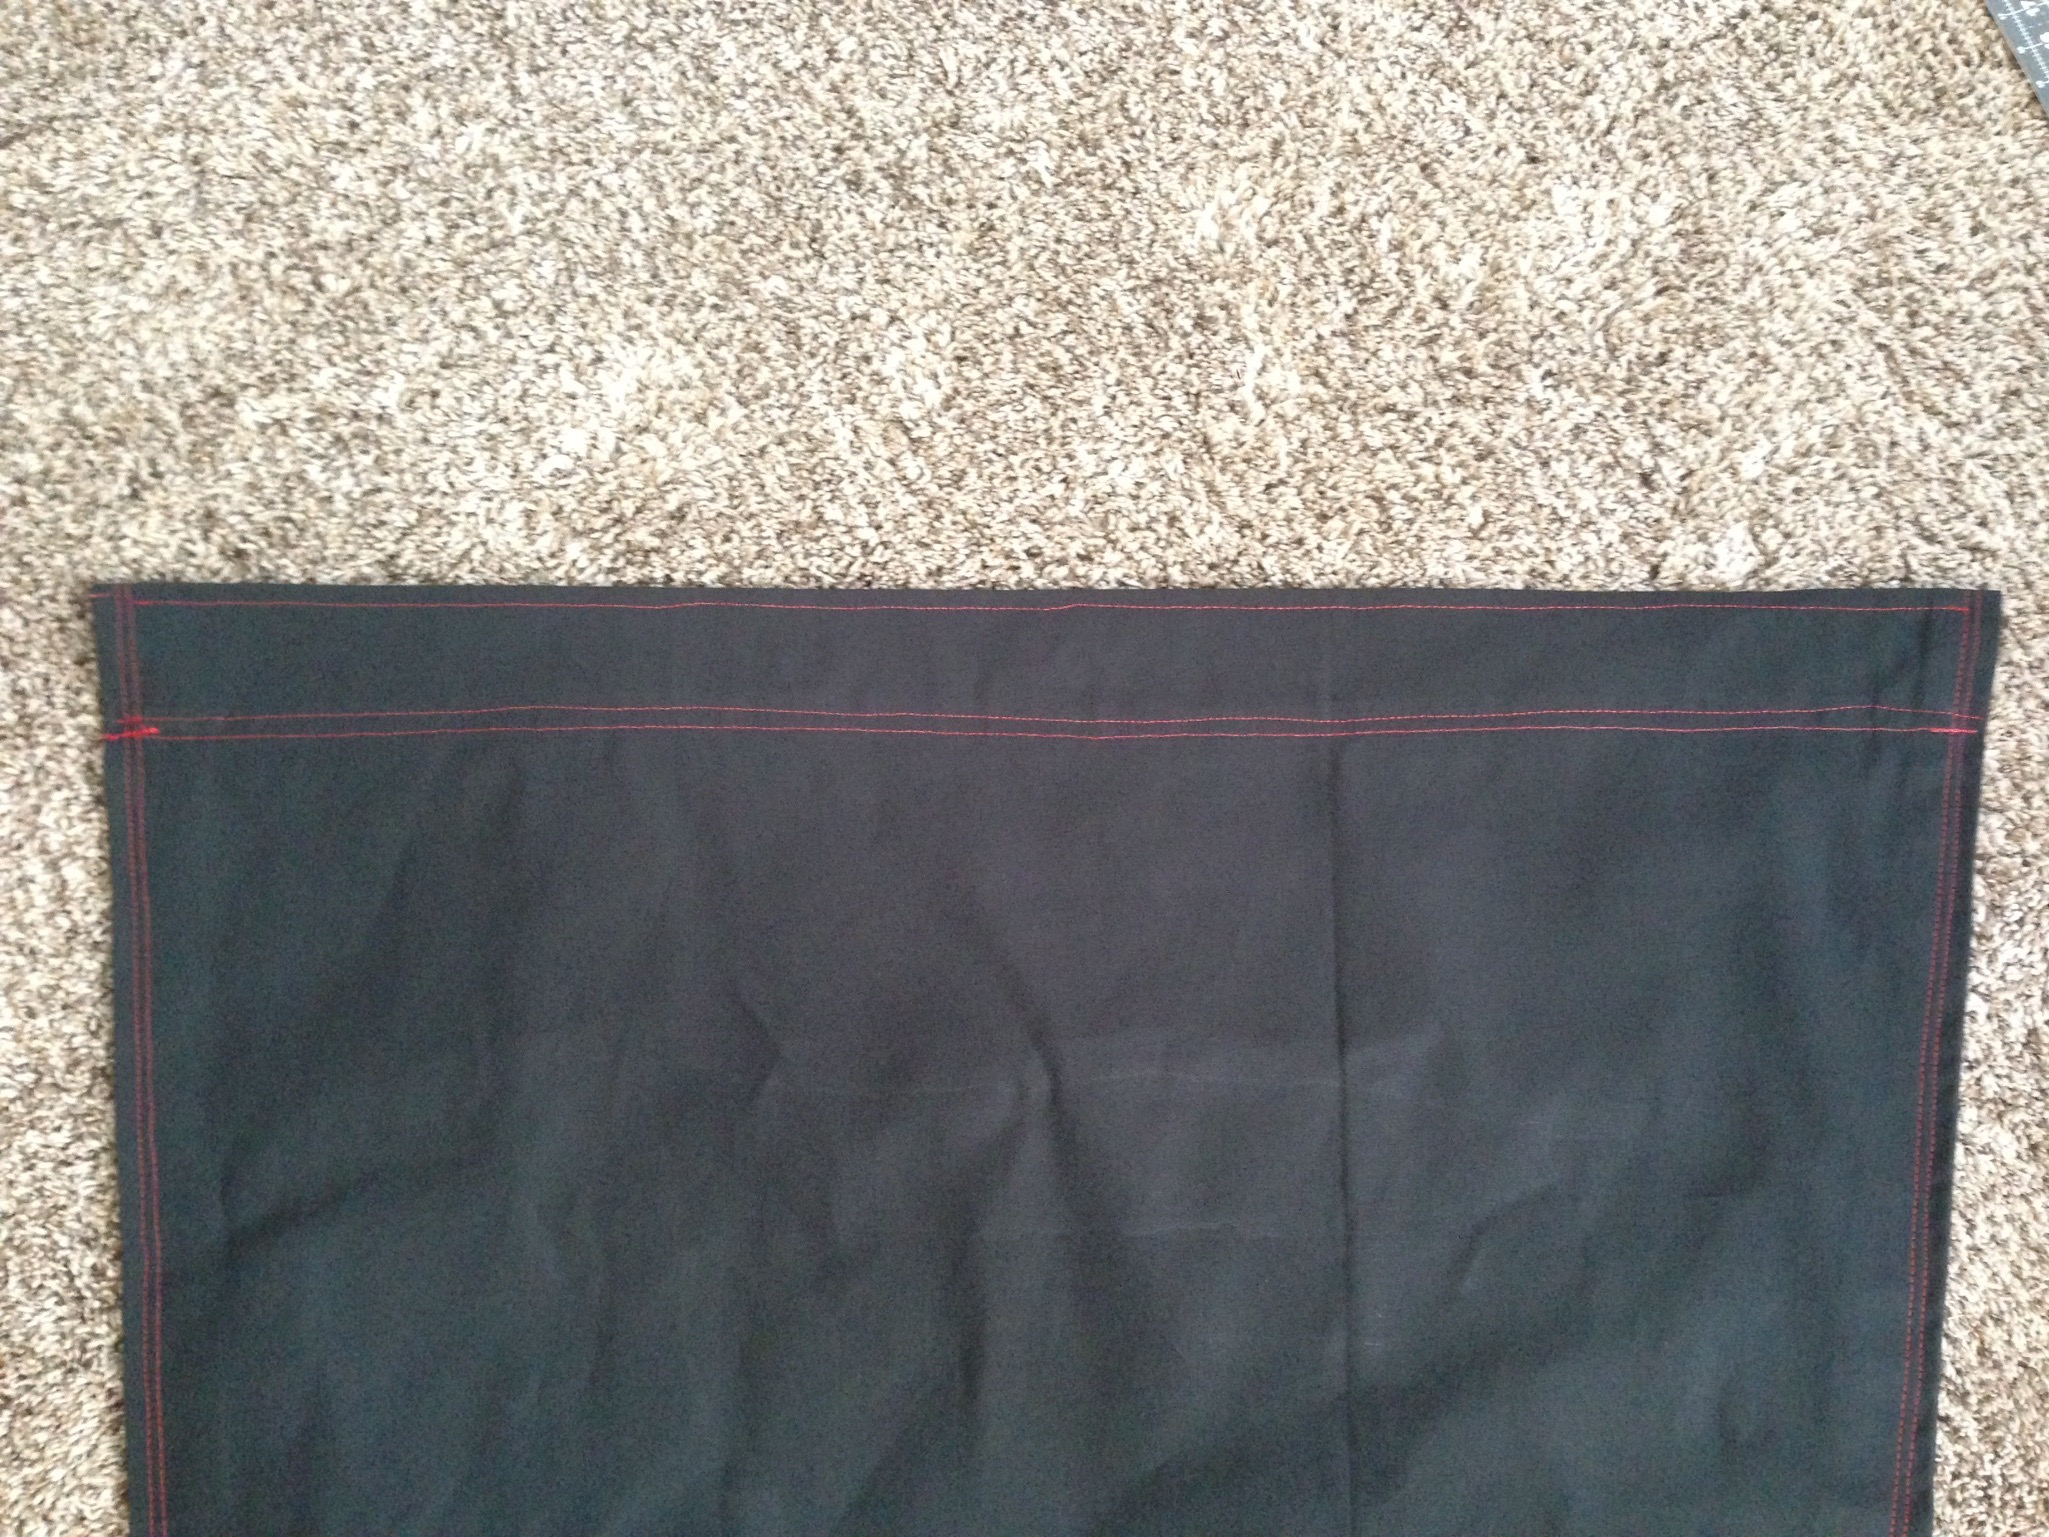 Picture of Sew the Pockets for Support Beams